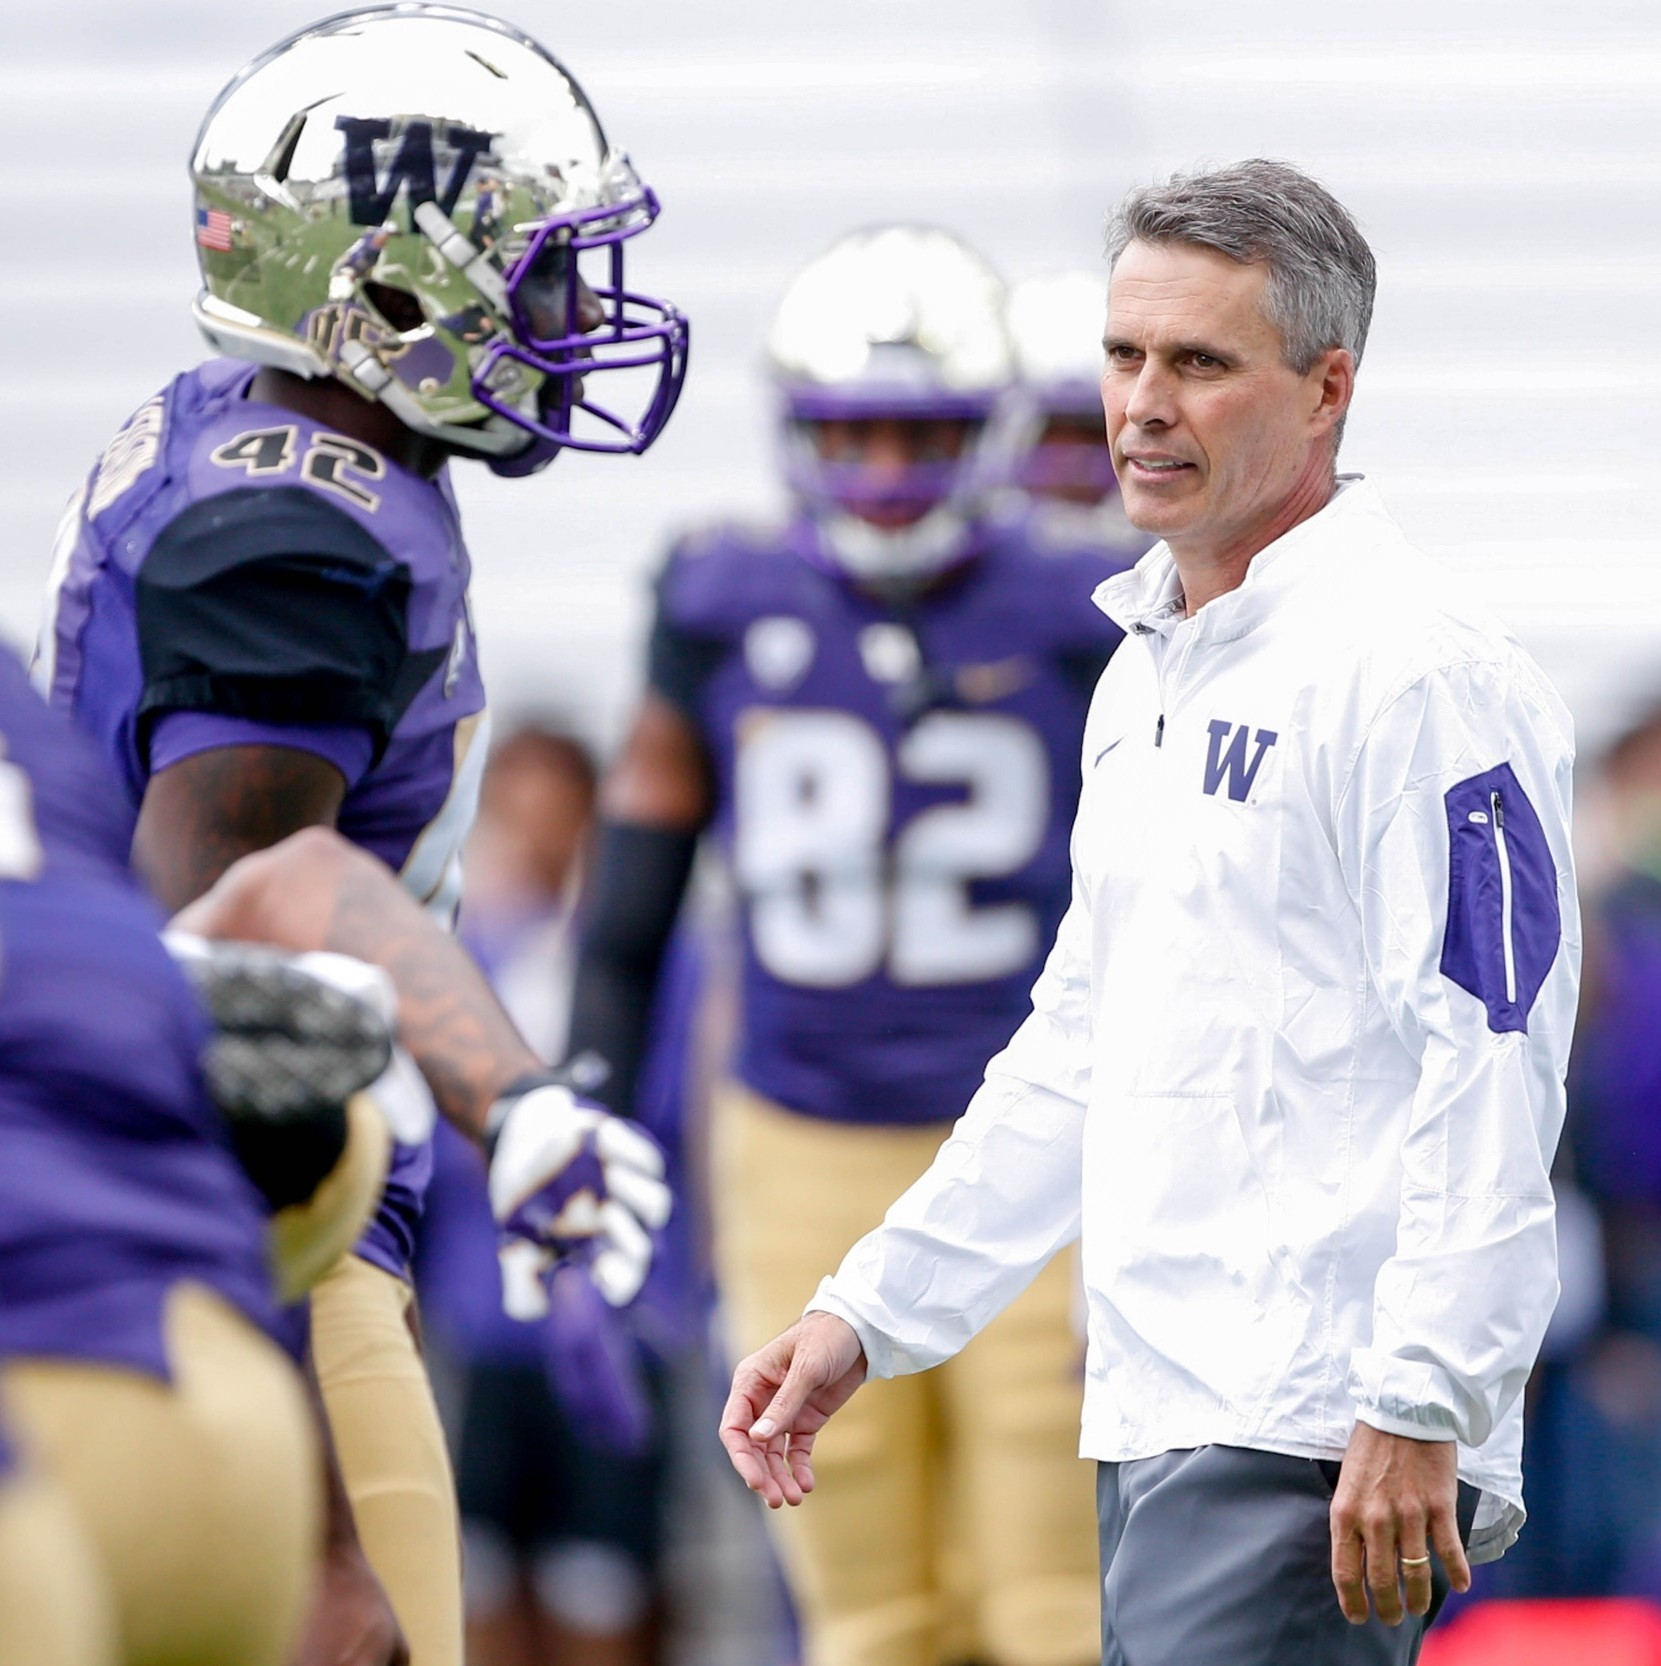 With-chris-petersen-in-charge-washington-is-poised-to-go-from-awkward-to-awesome-1468593411.jpg?crop=0.6647173489278753xw:1xh;0